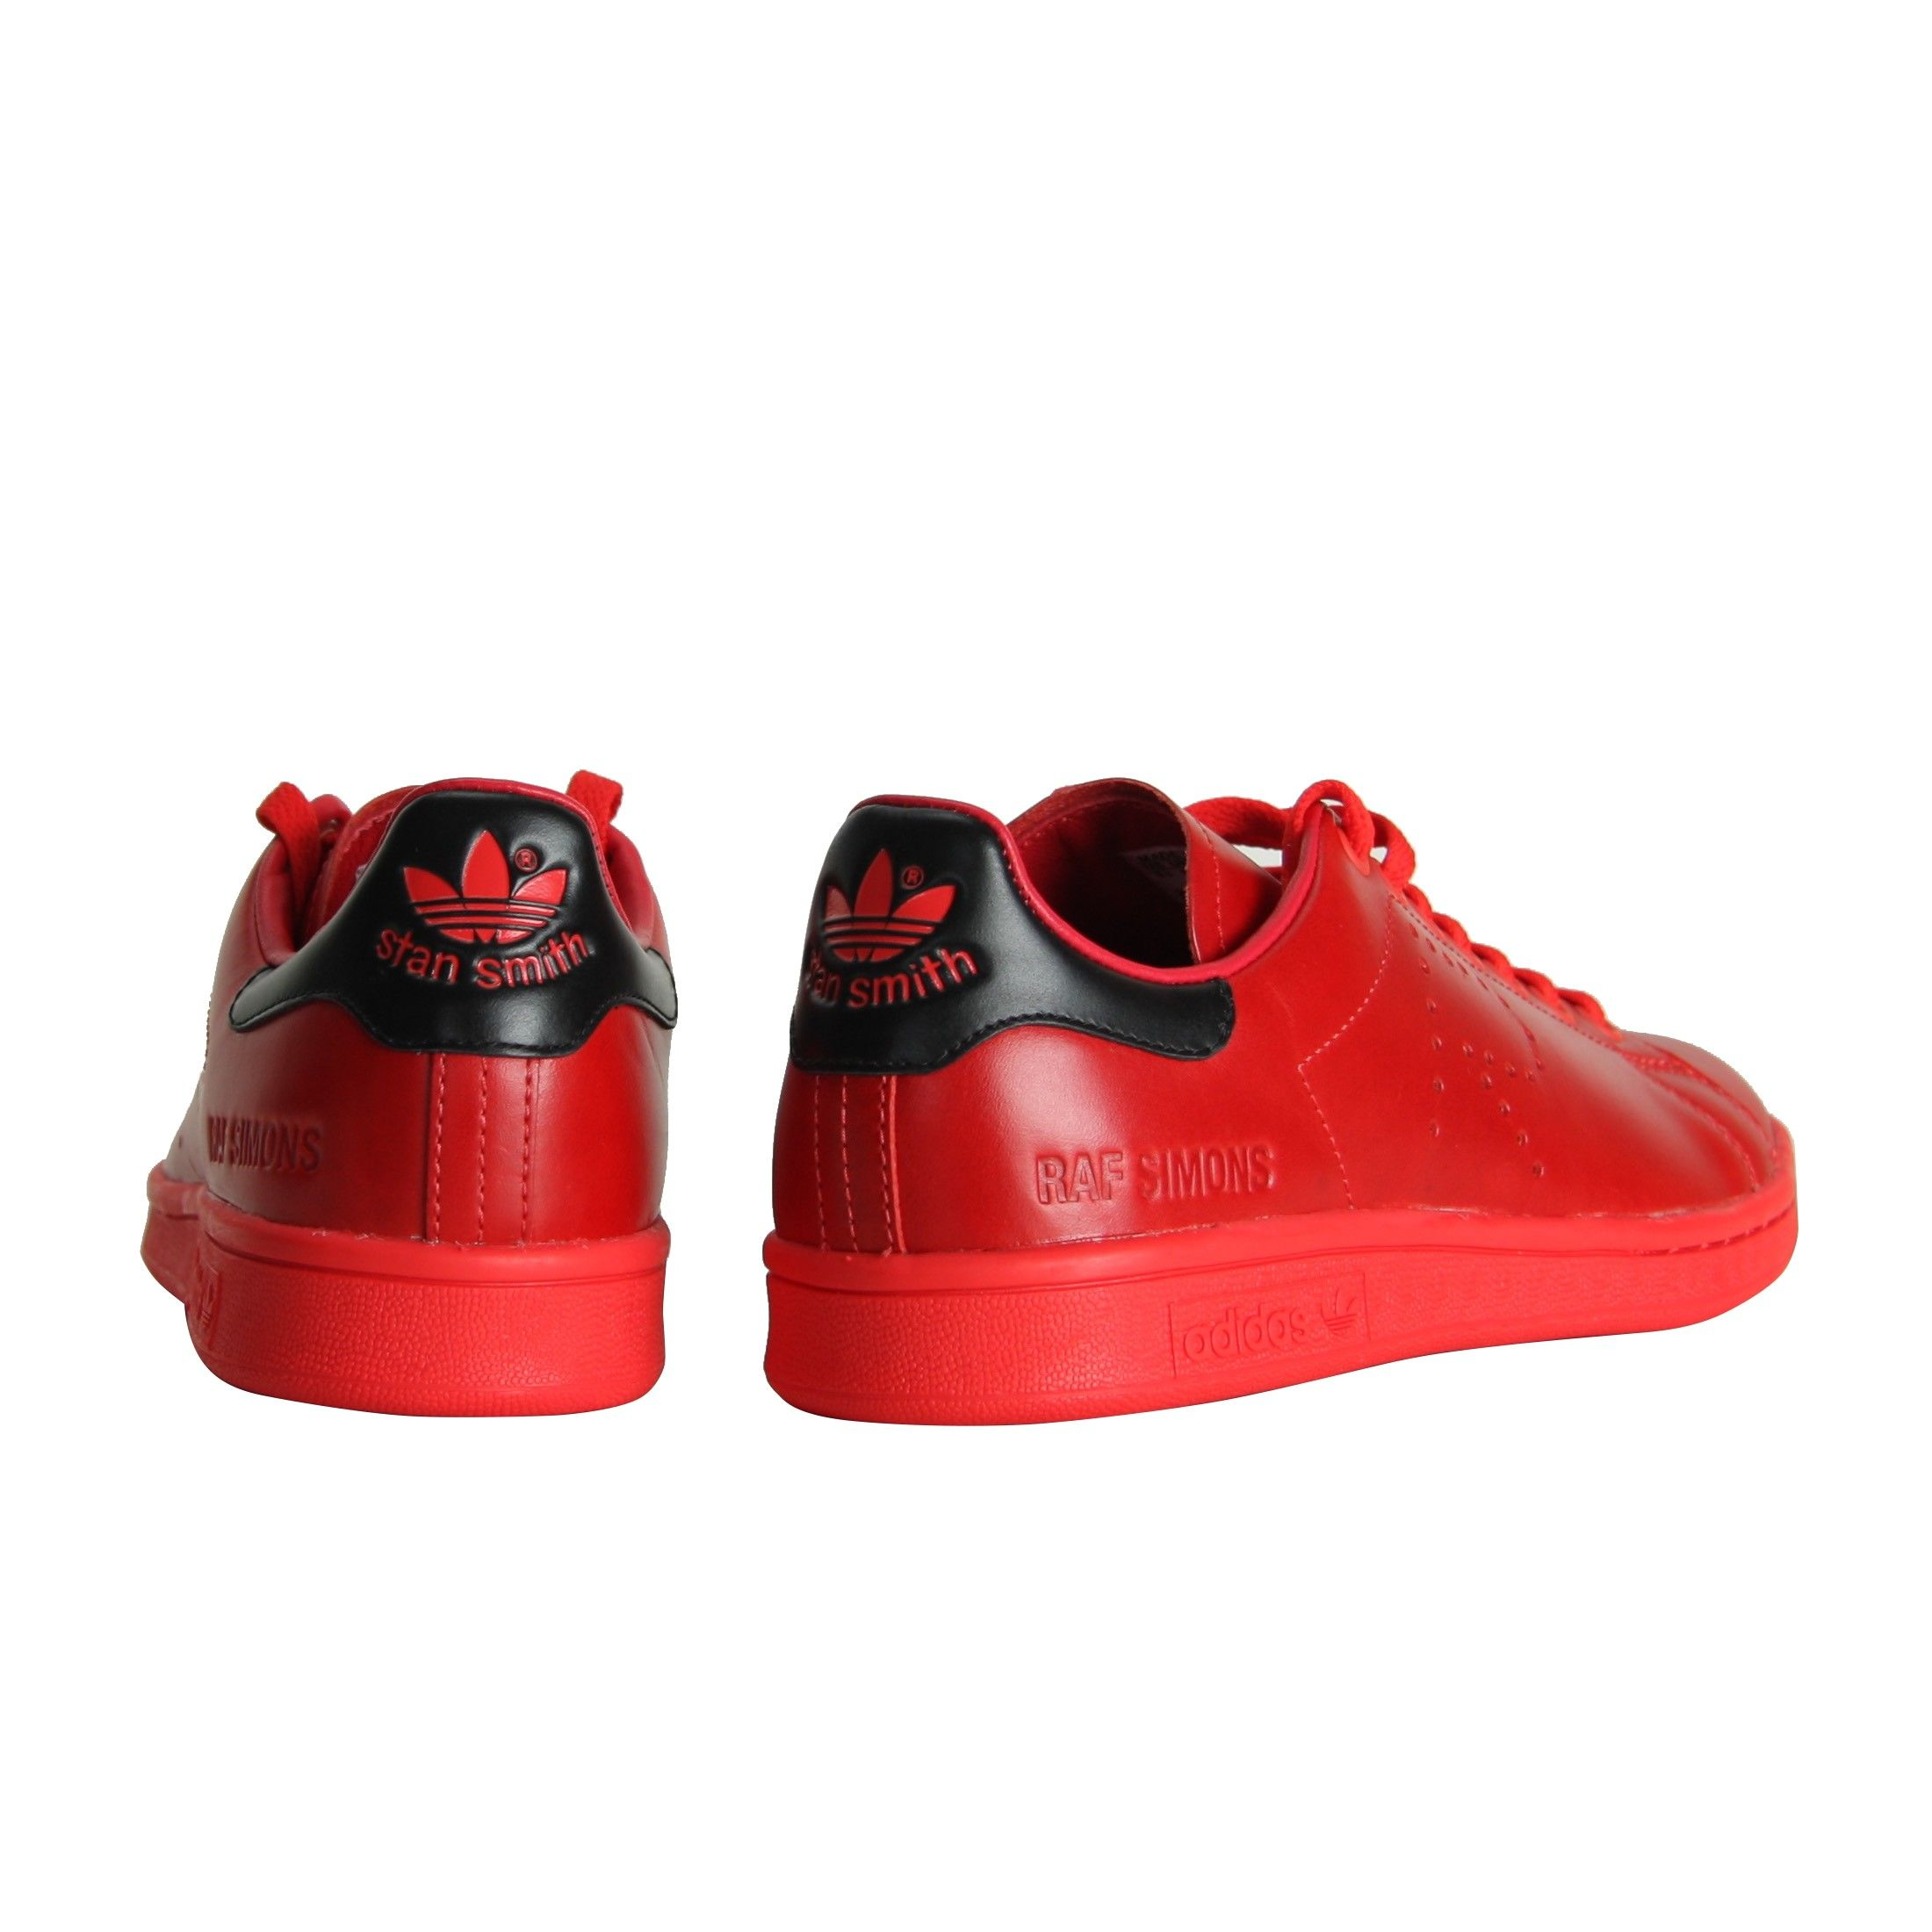 Raf simons sneakers red